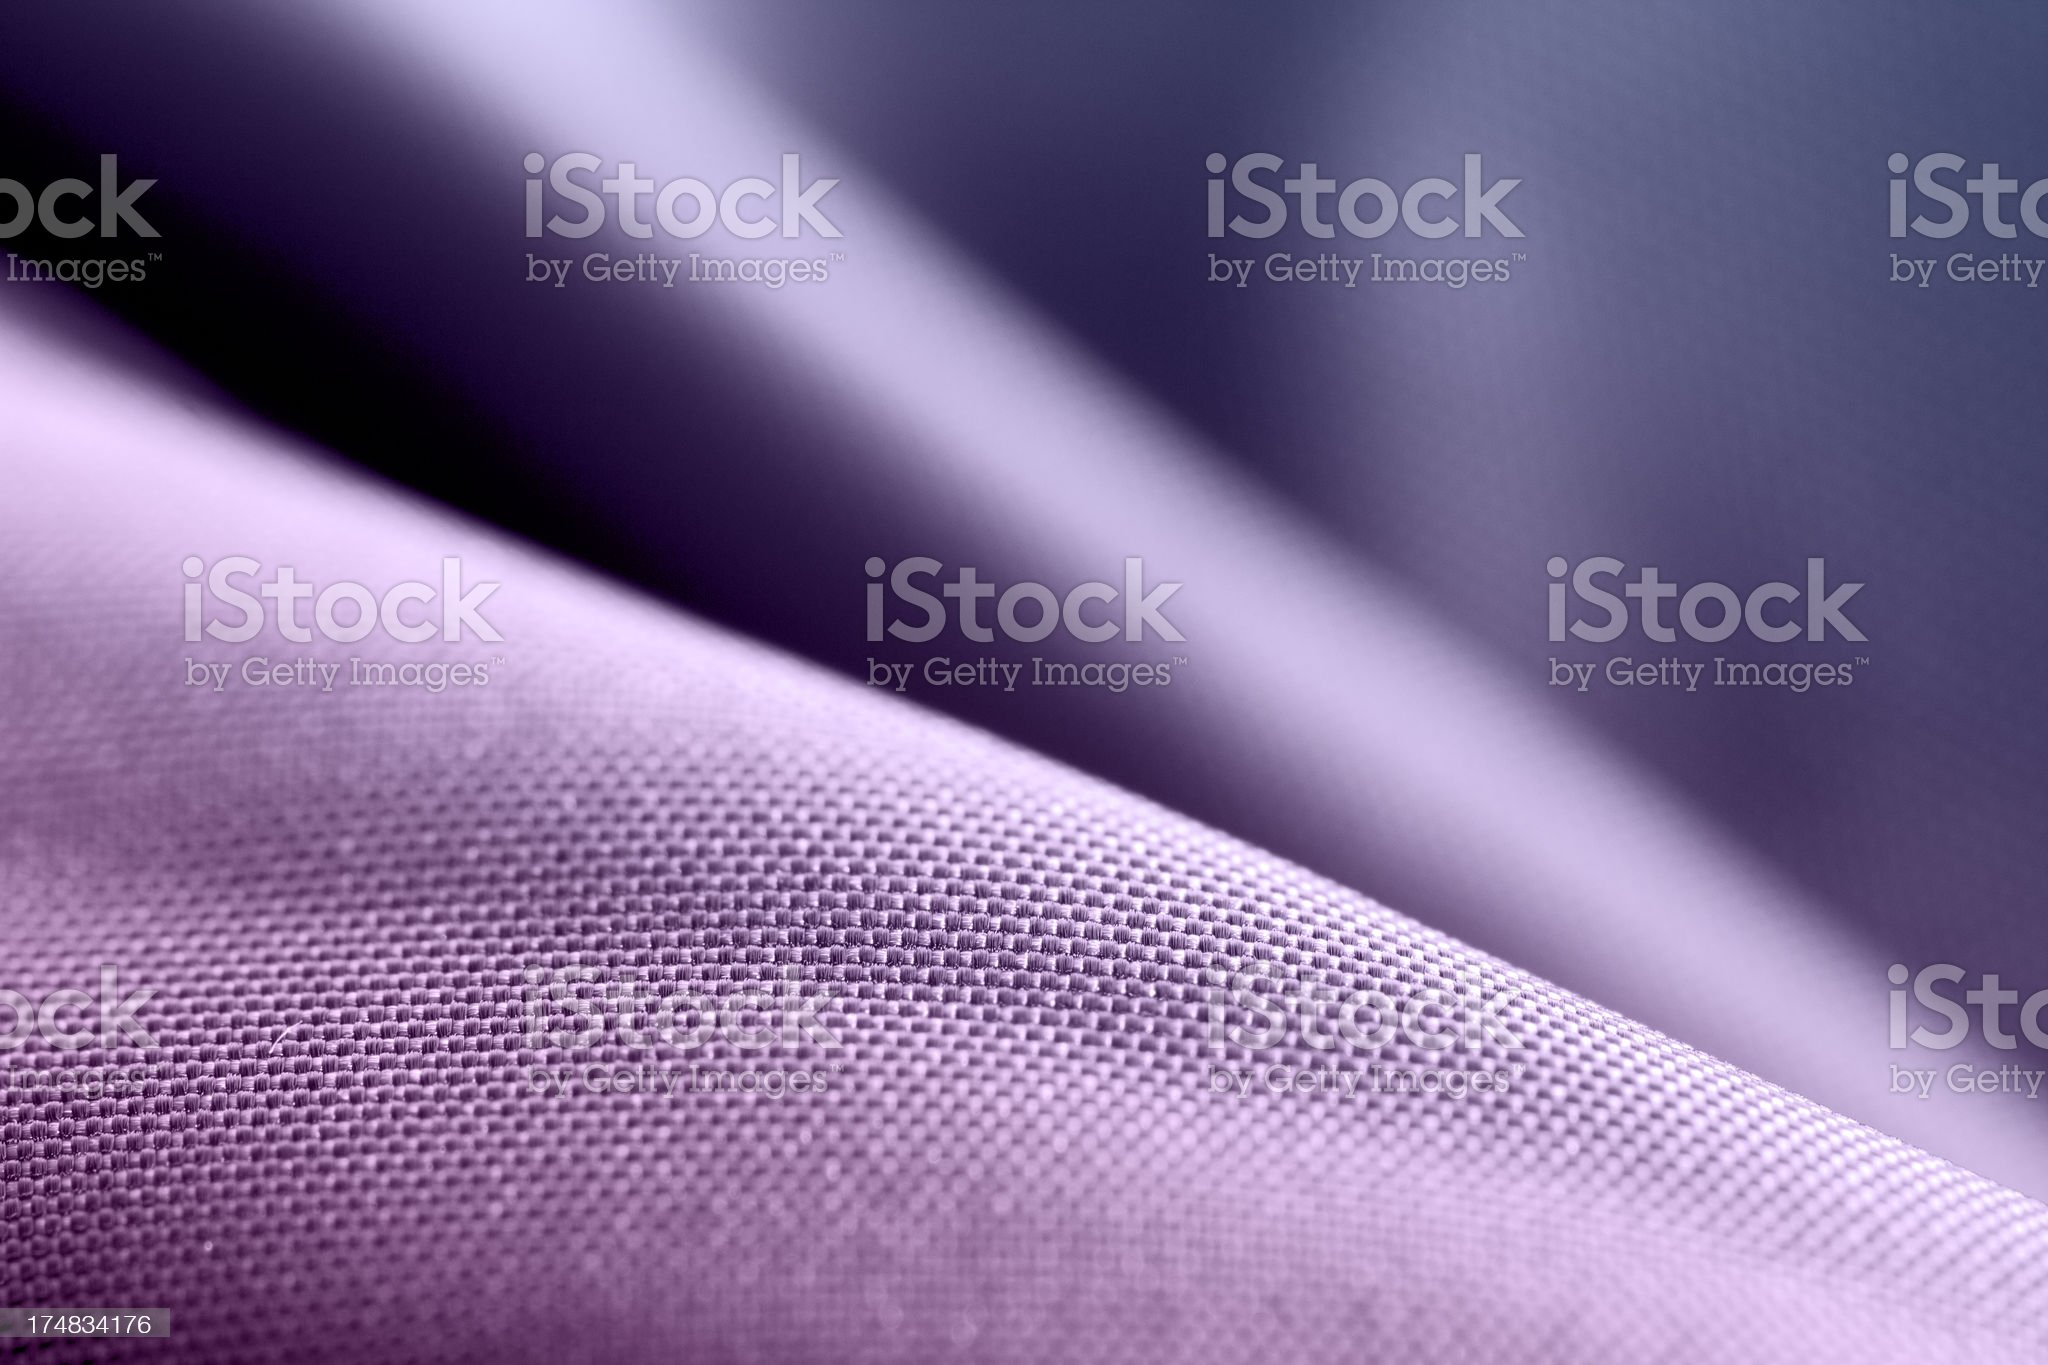 Waves of Fabric royalty-free stock photo